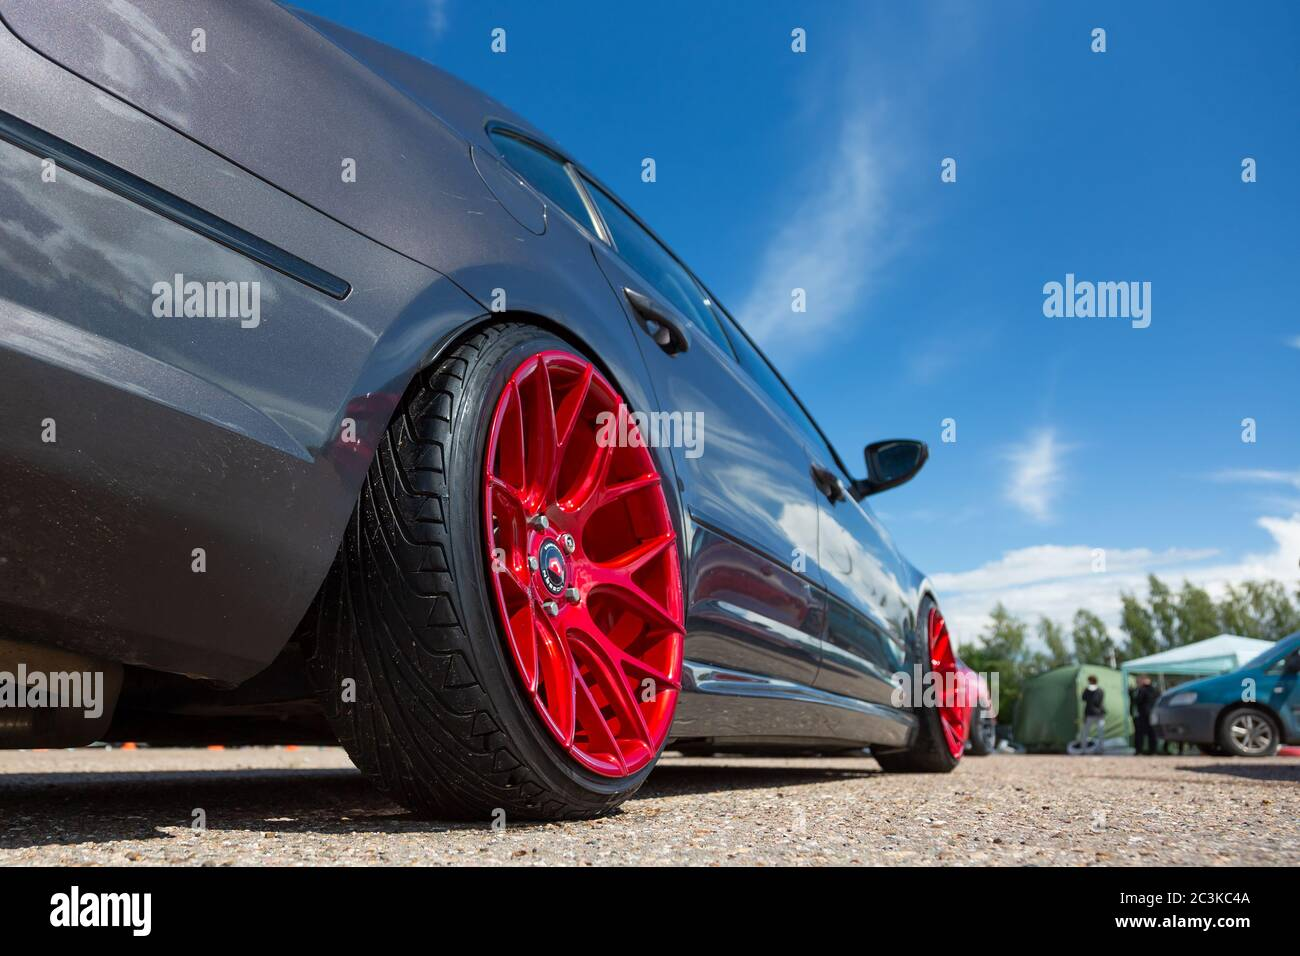 Vw Passat Cc High Resolution Stock Photography And Images Alamy